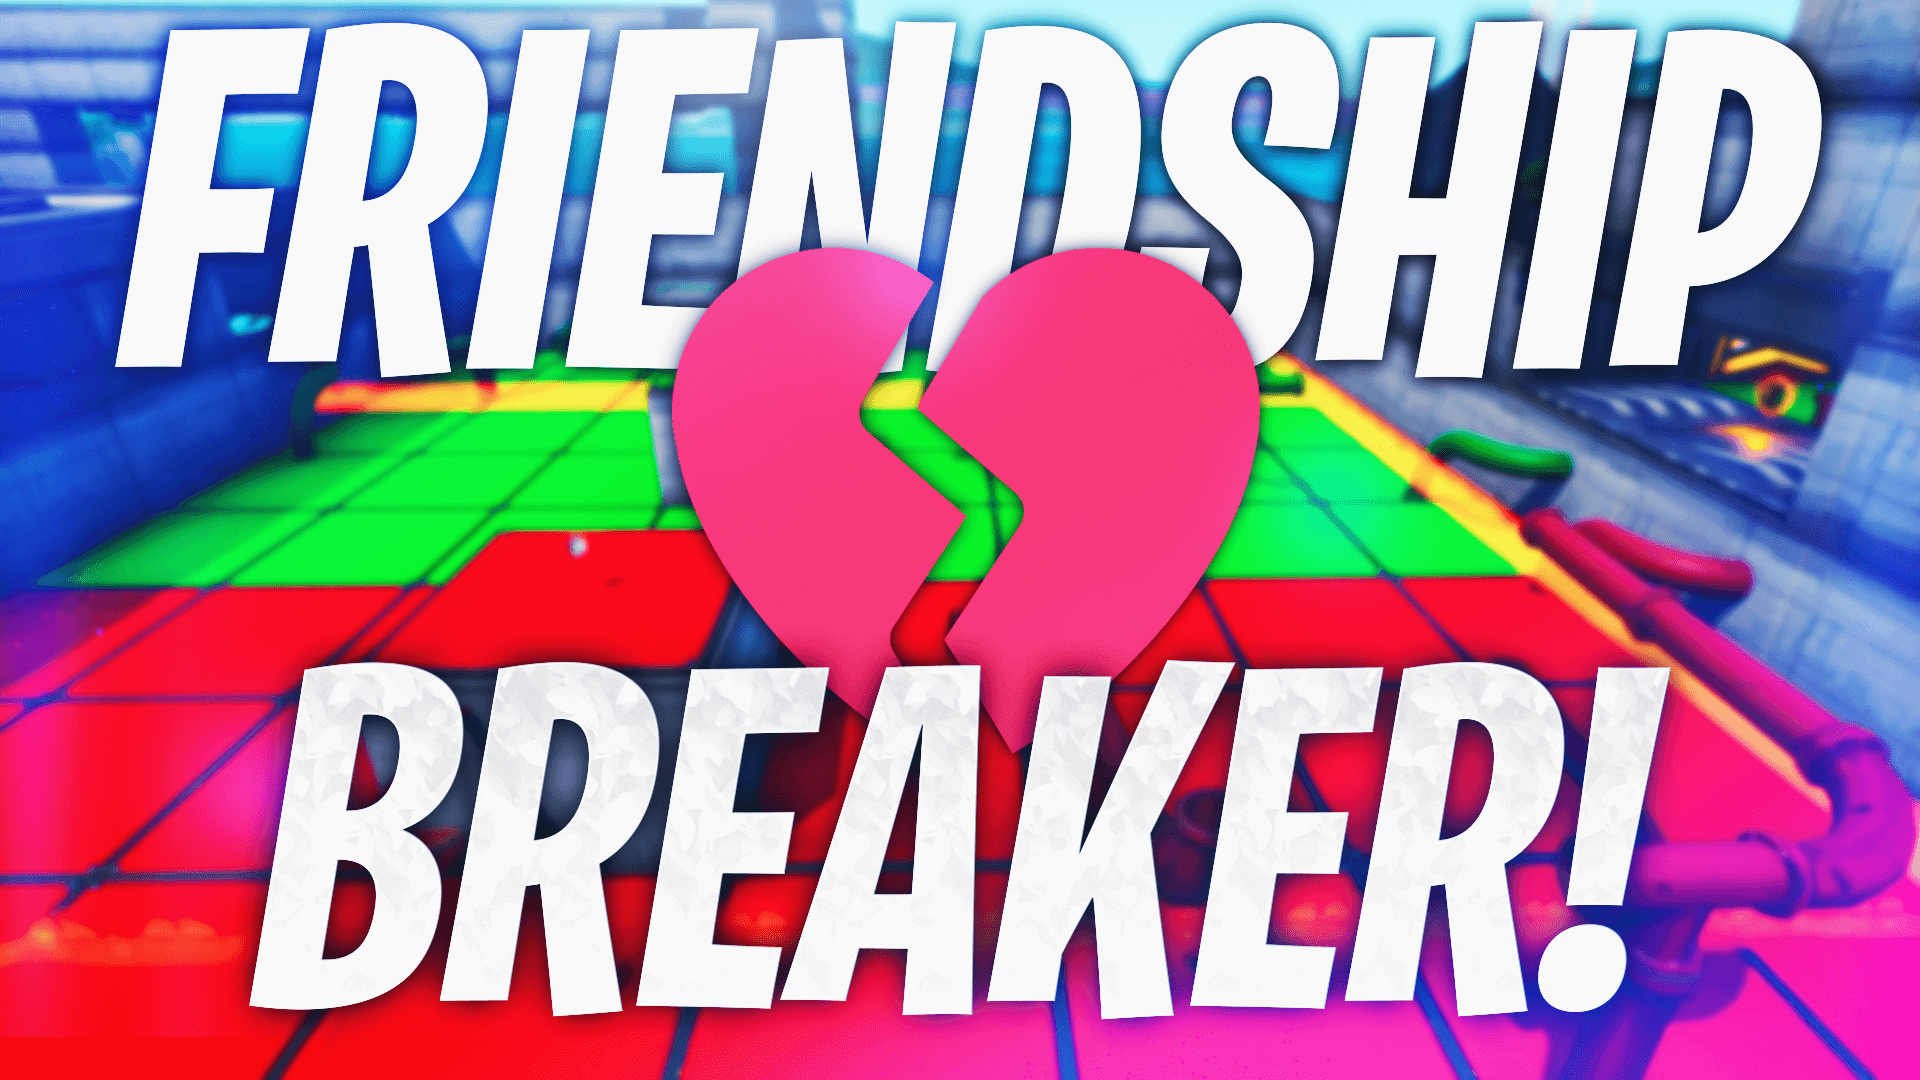 FRIENDSHIP BREAKER